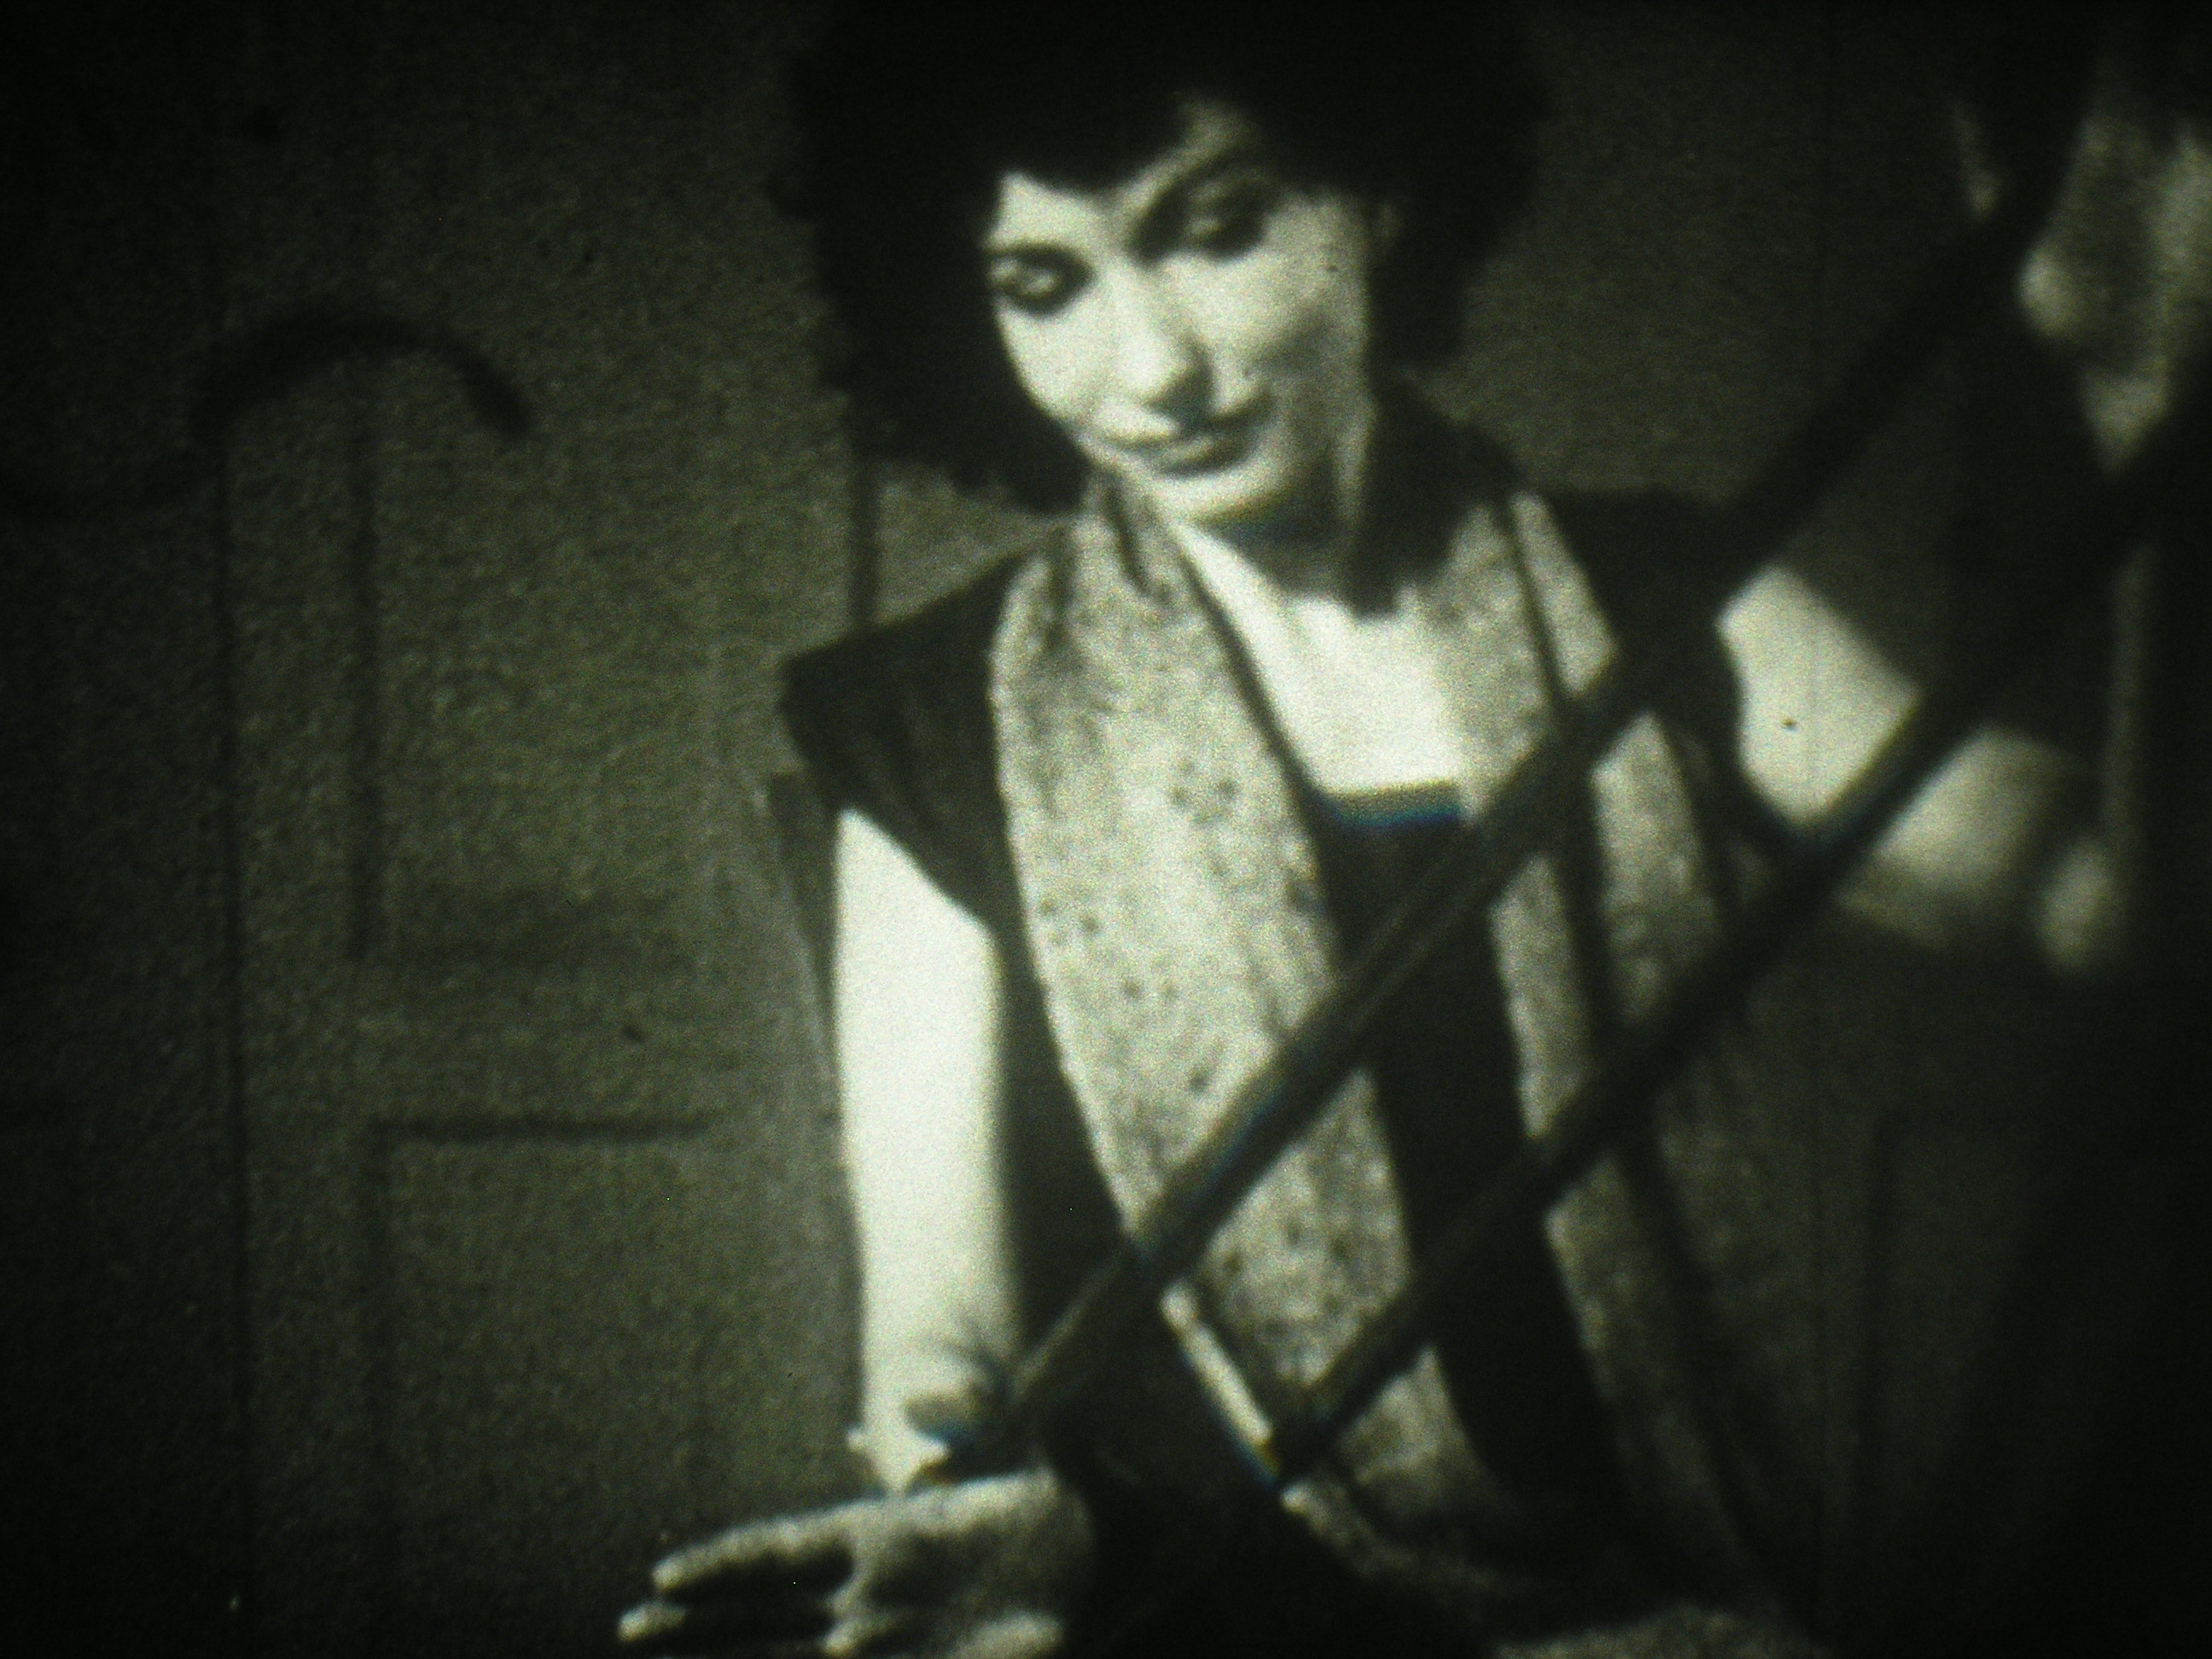 Maya Deren, Ritual In Transfigured Time, 1946. Courtesy of LUX, London